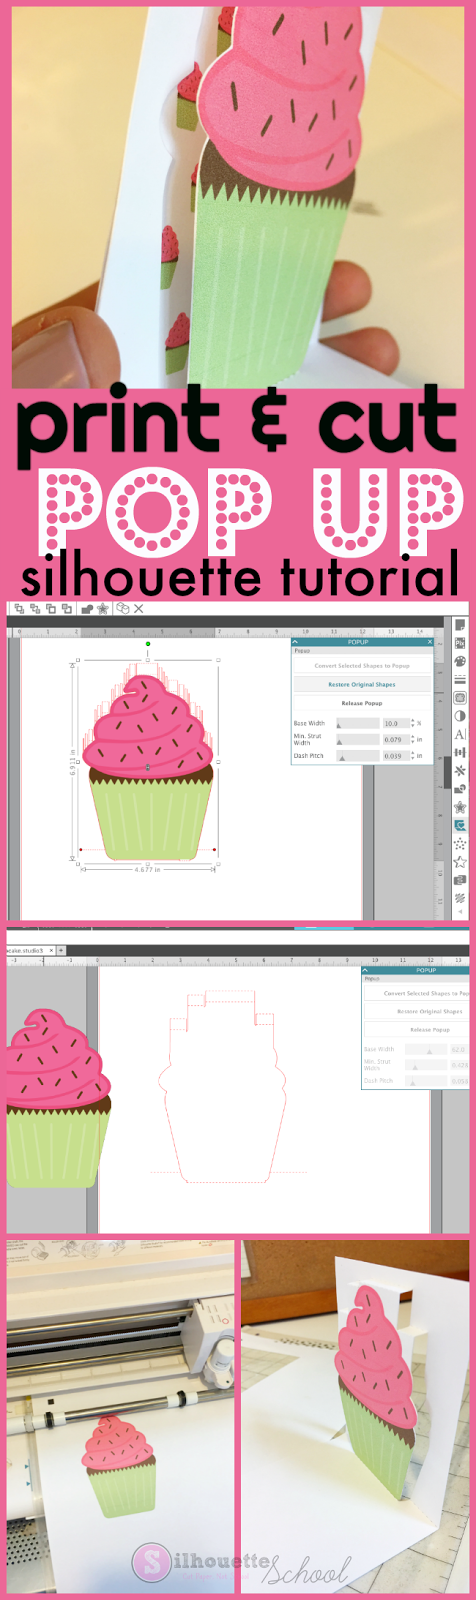 silhouette studio 4.1 tutorial